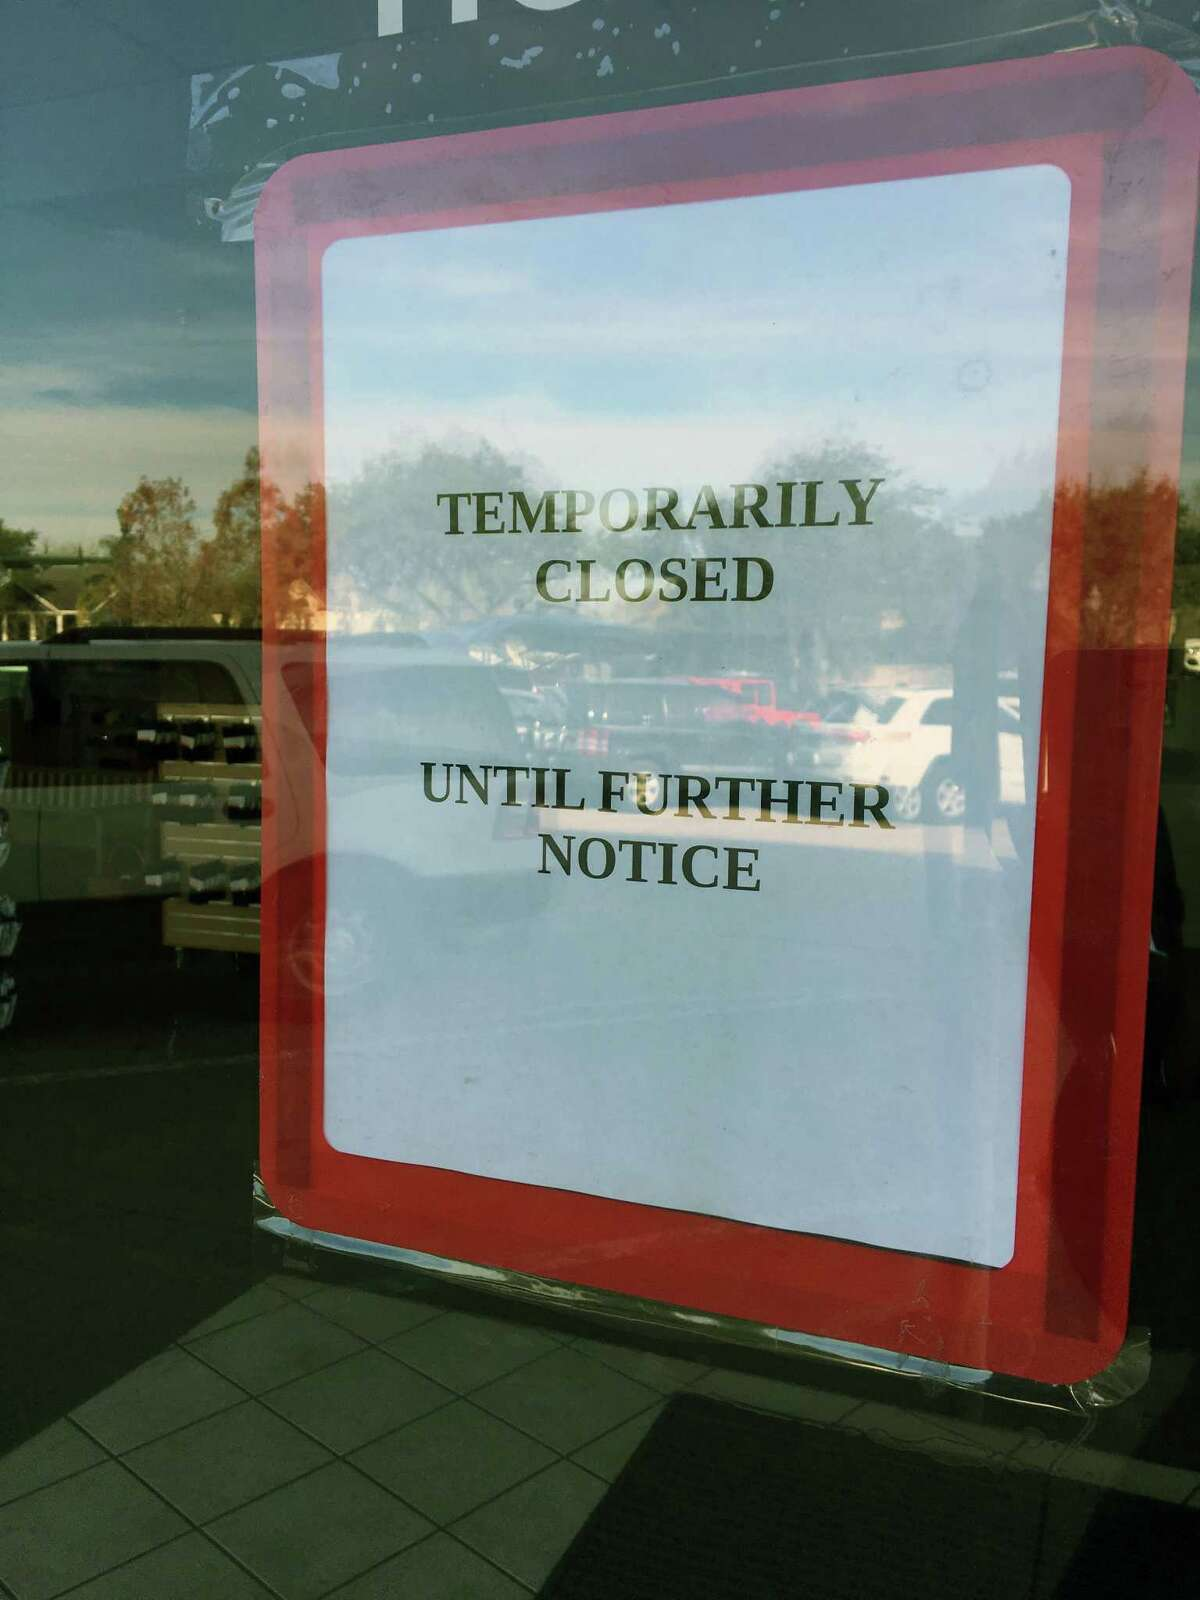 This sign was posted at the Bellaire and Braes location.